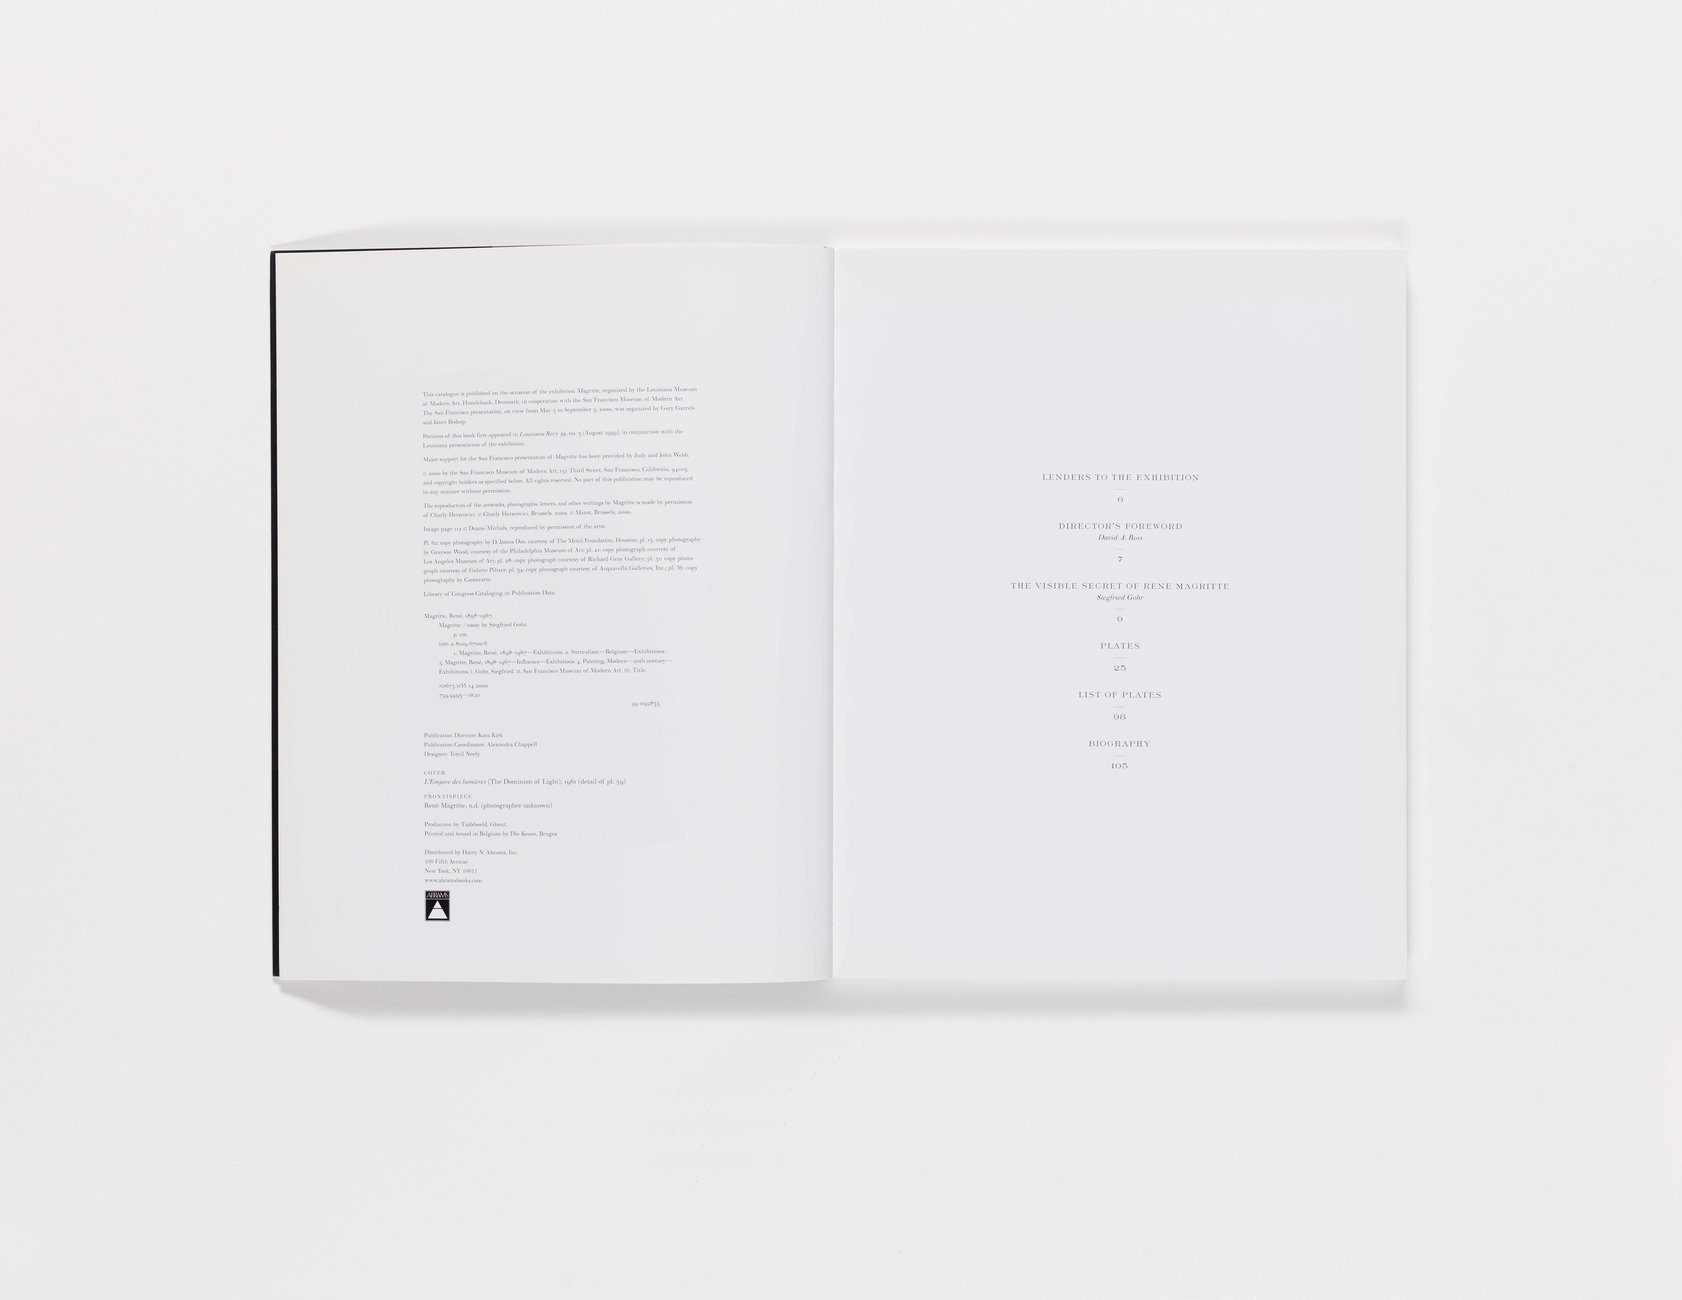 Magritte publication table of contents